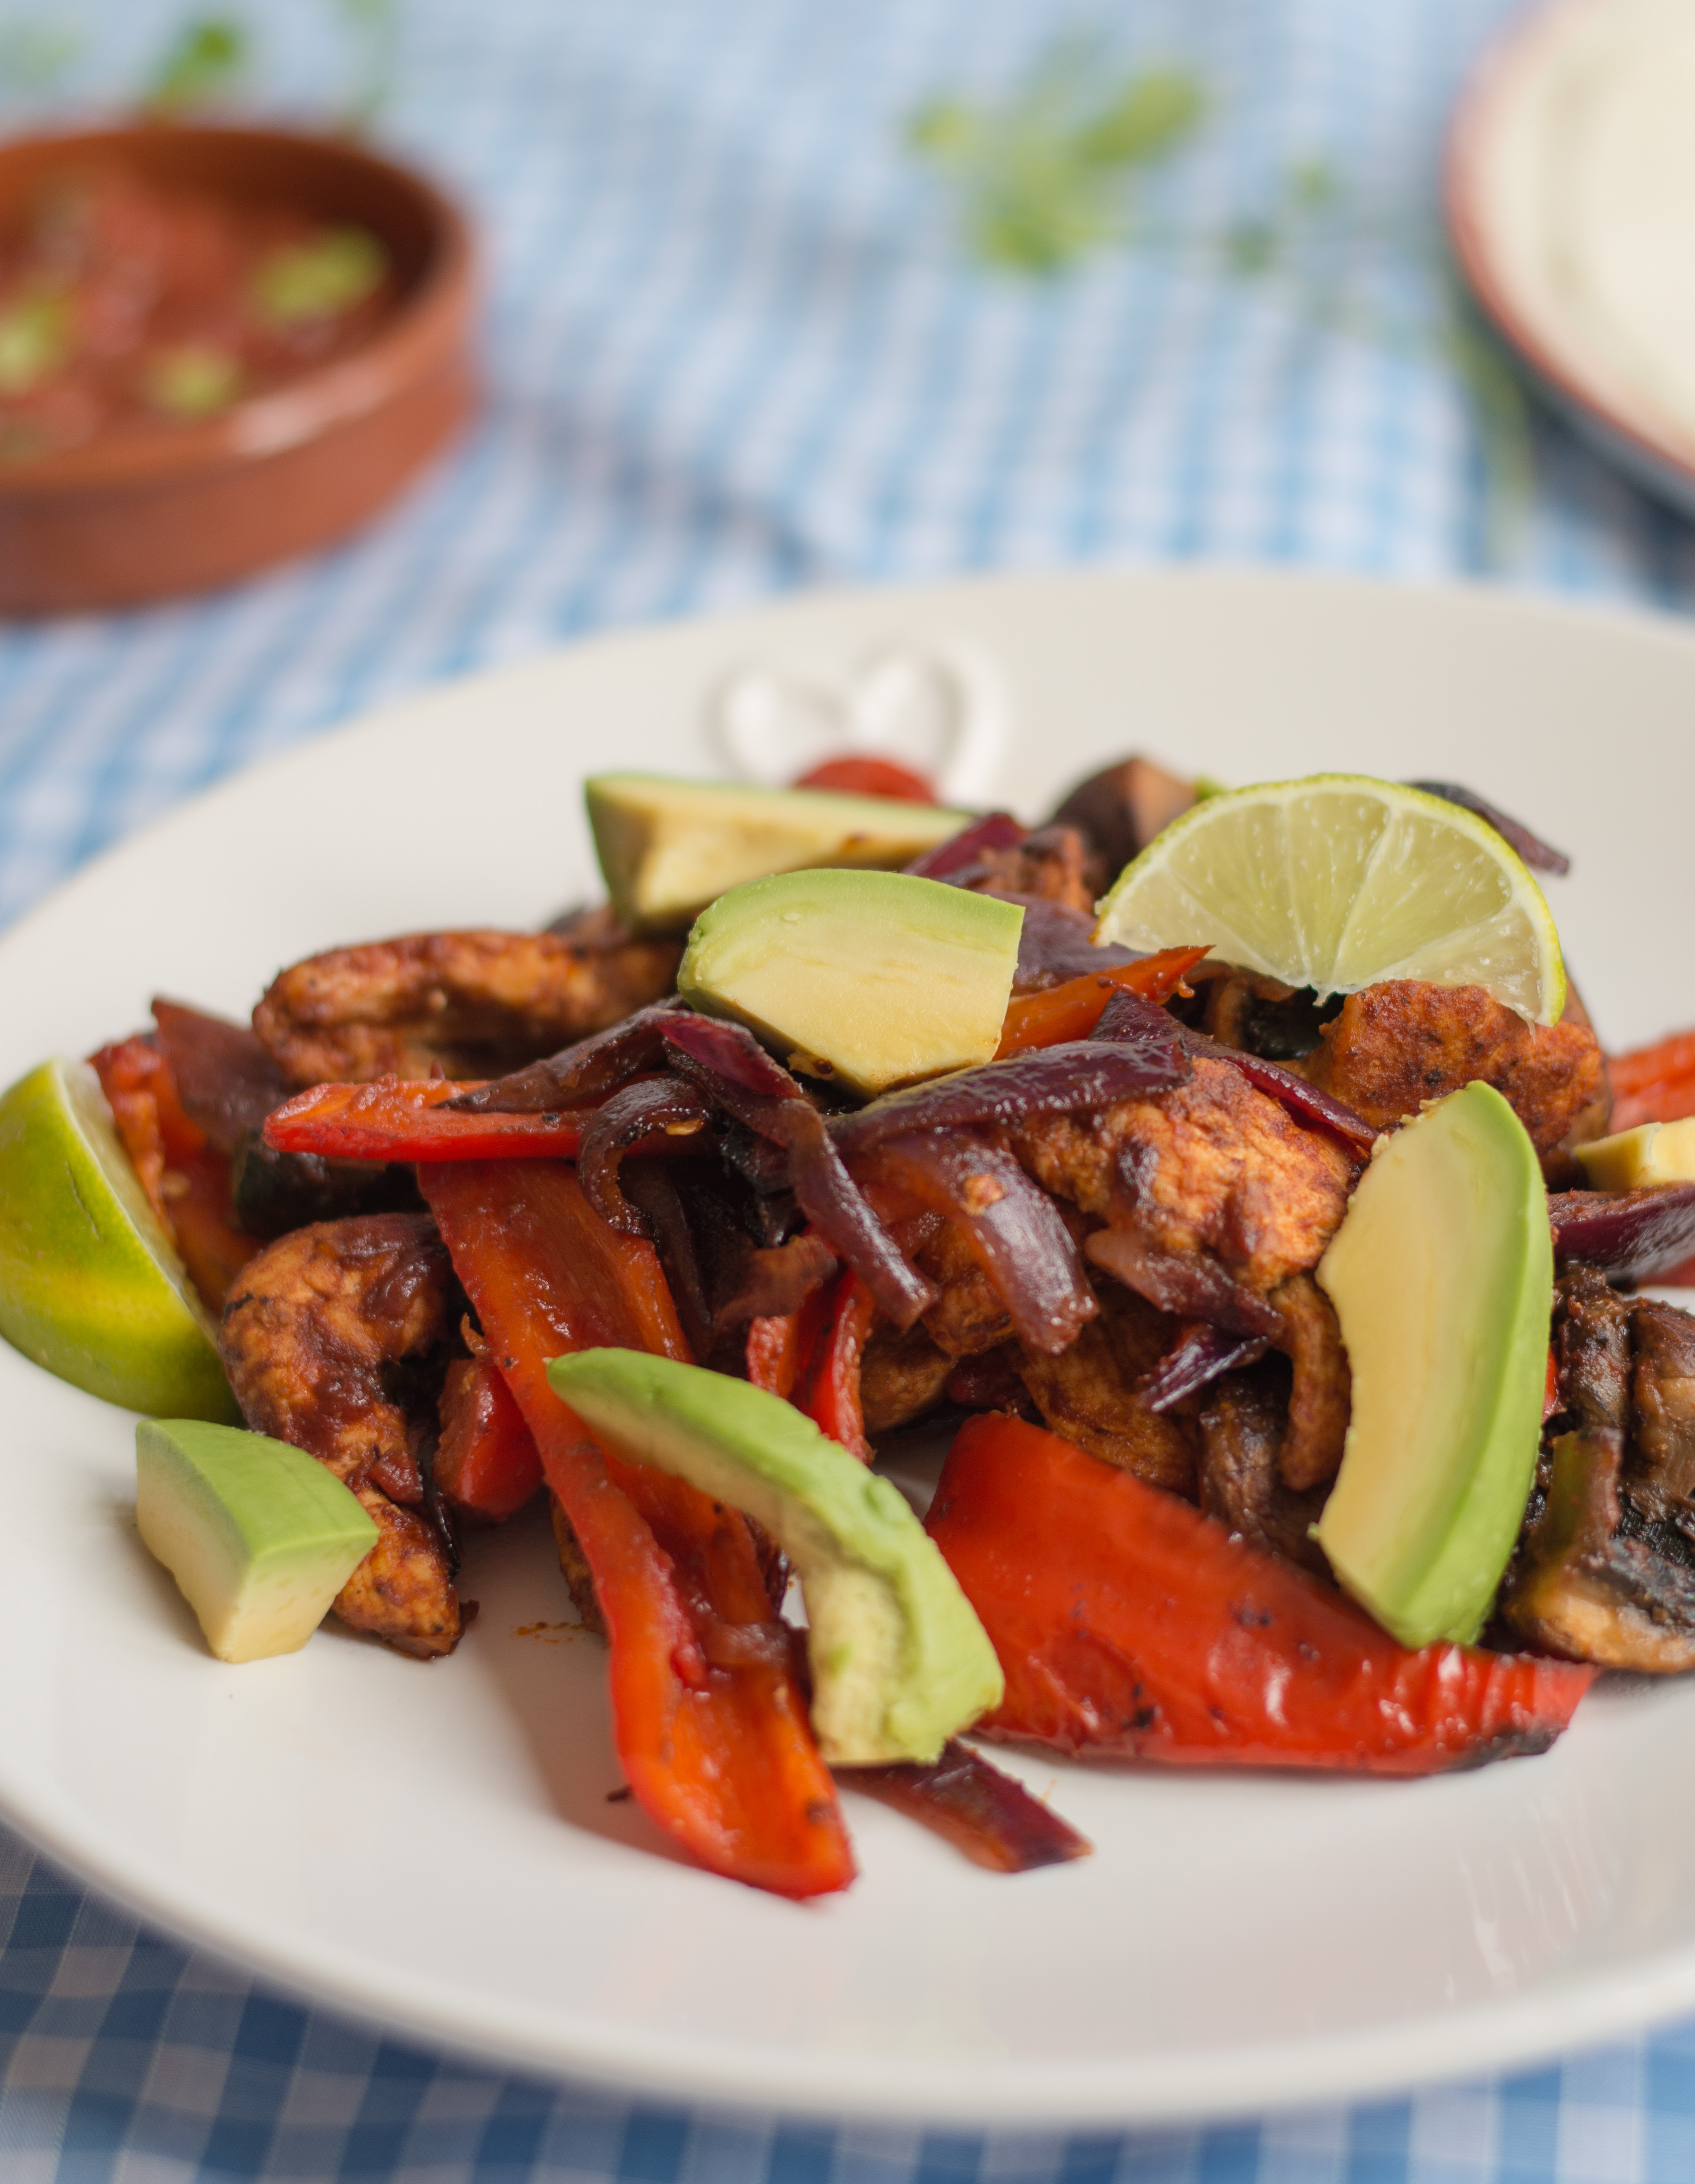 chicken fajitas (45 angle)